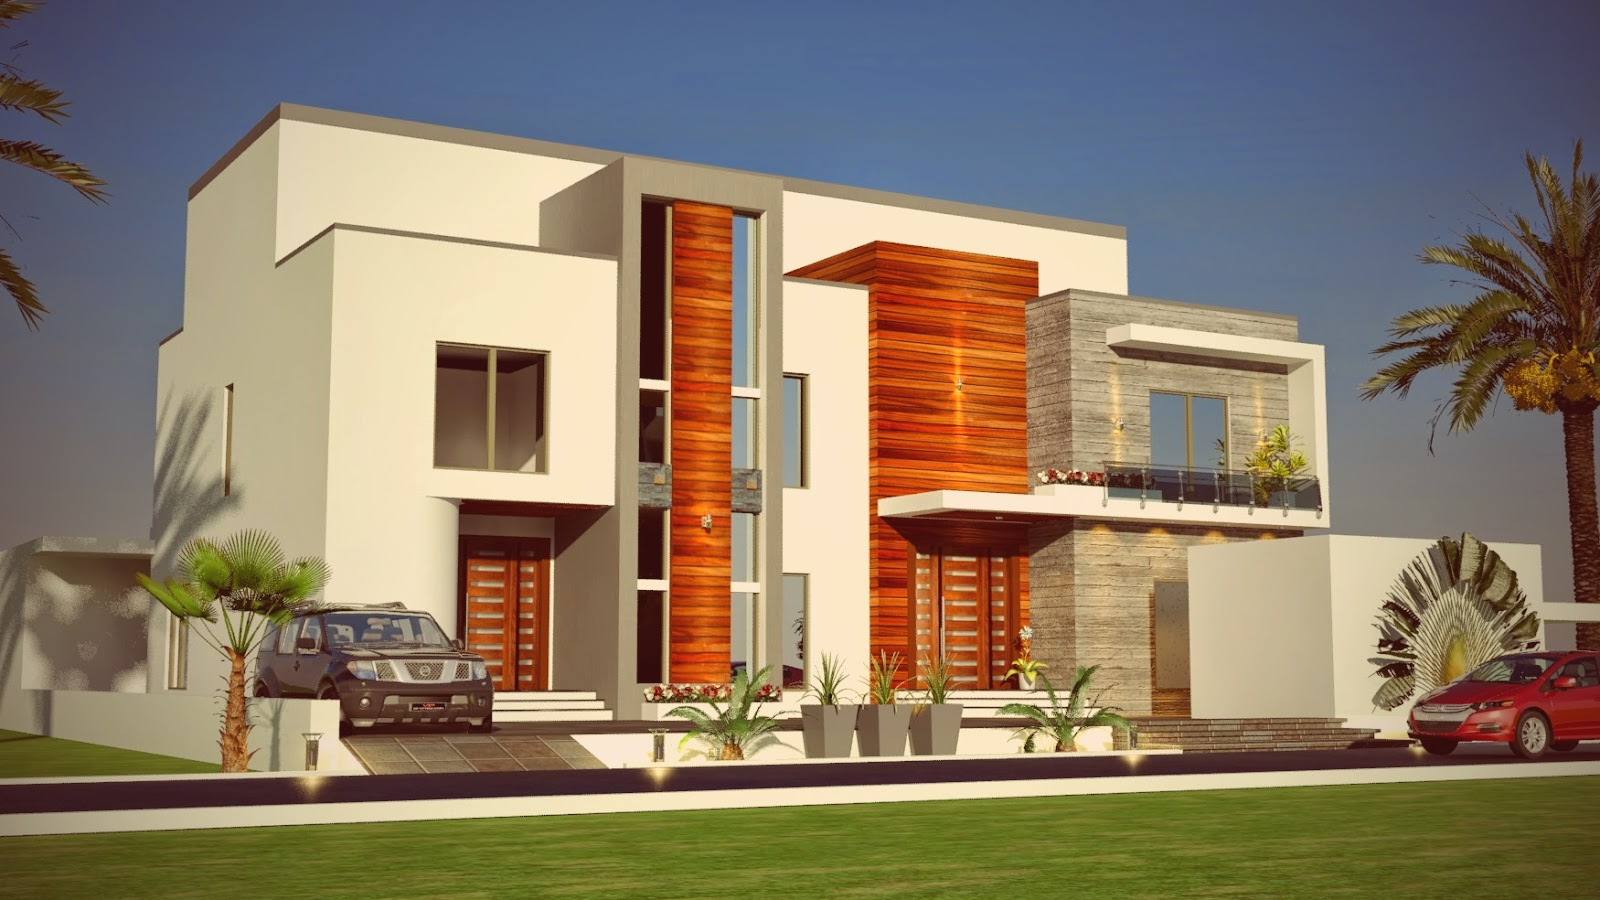 Front Elevation Pictures Free Download : D elevation of house free download joy studio design